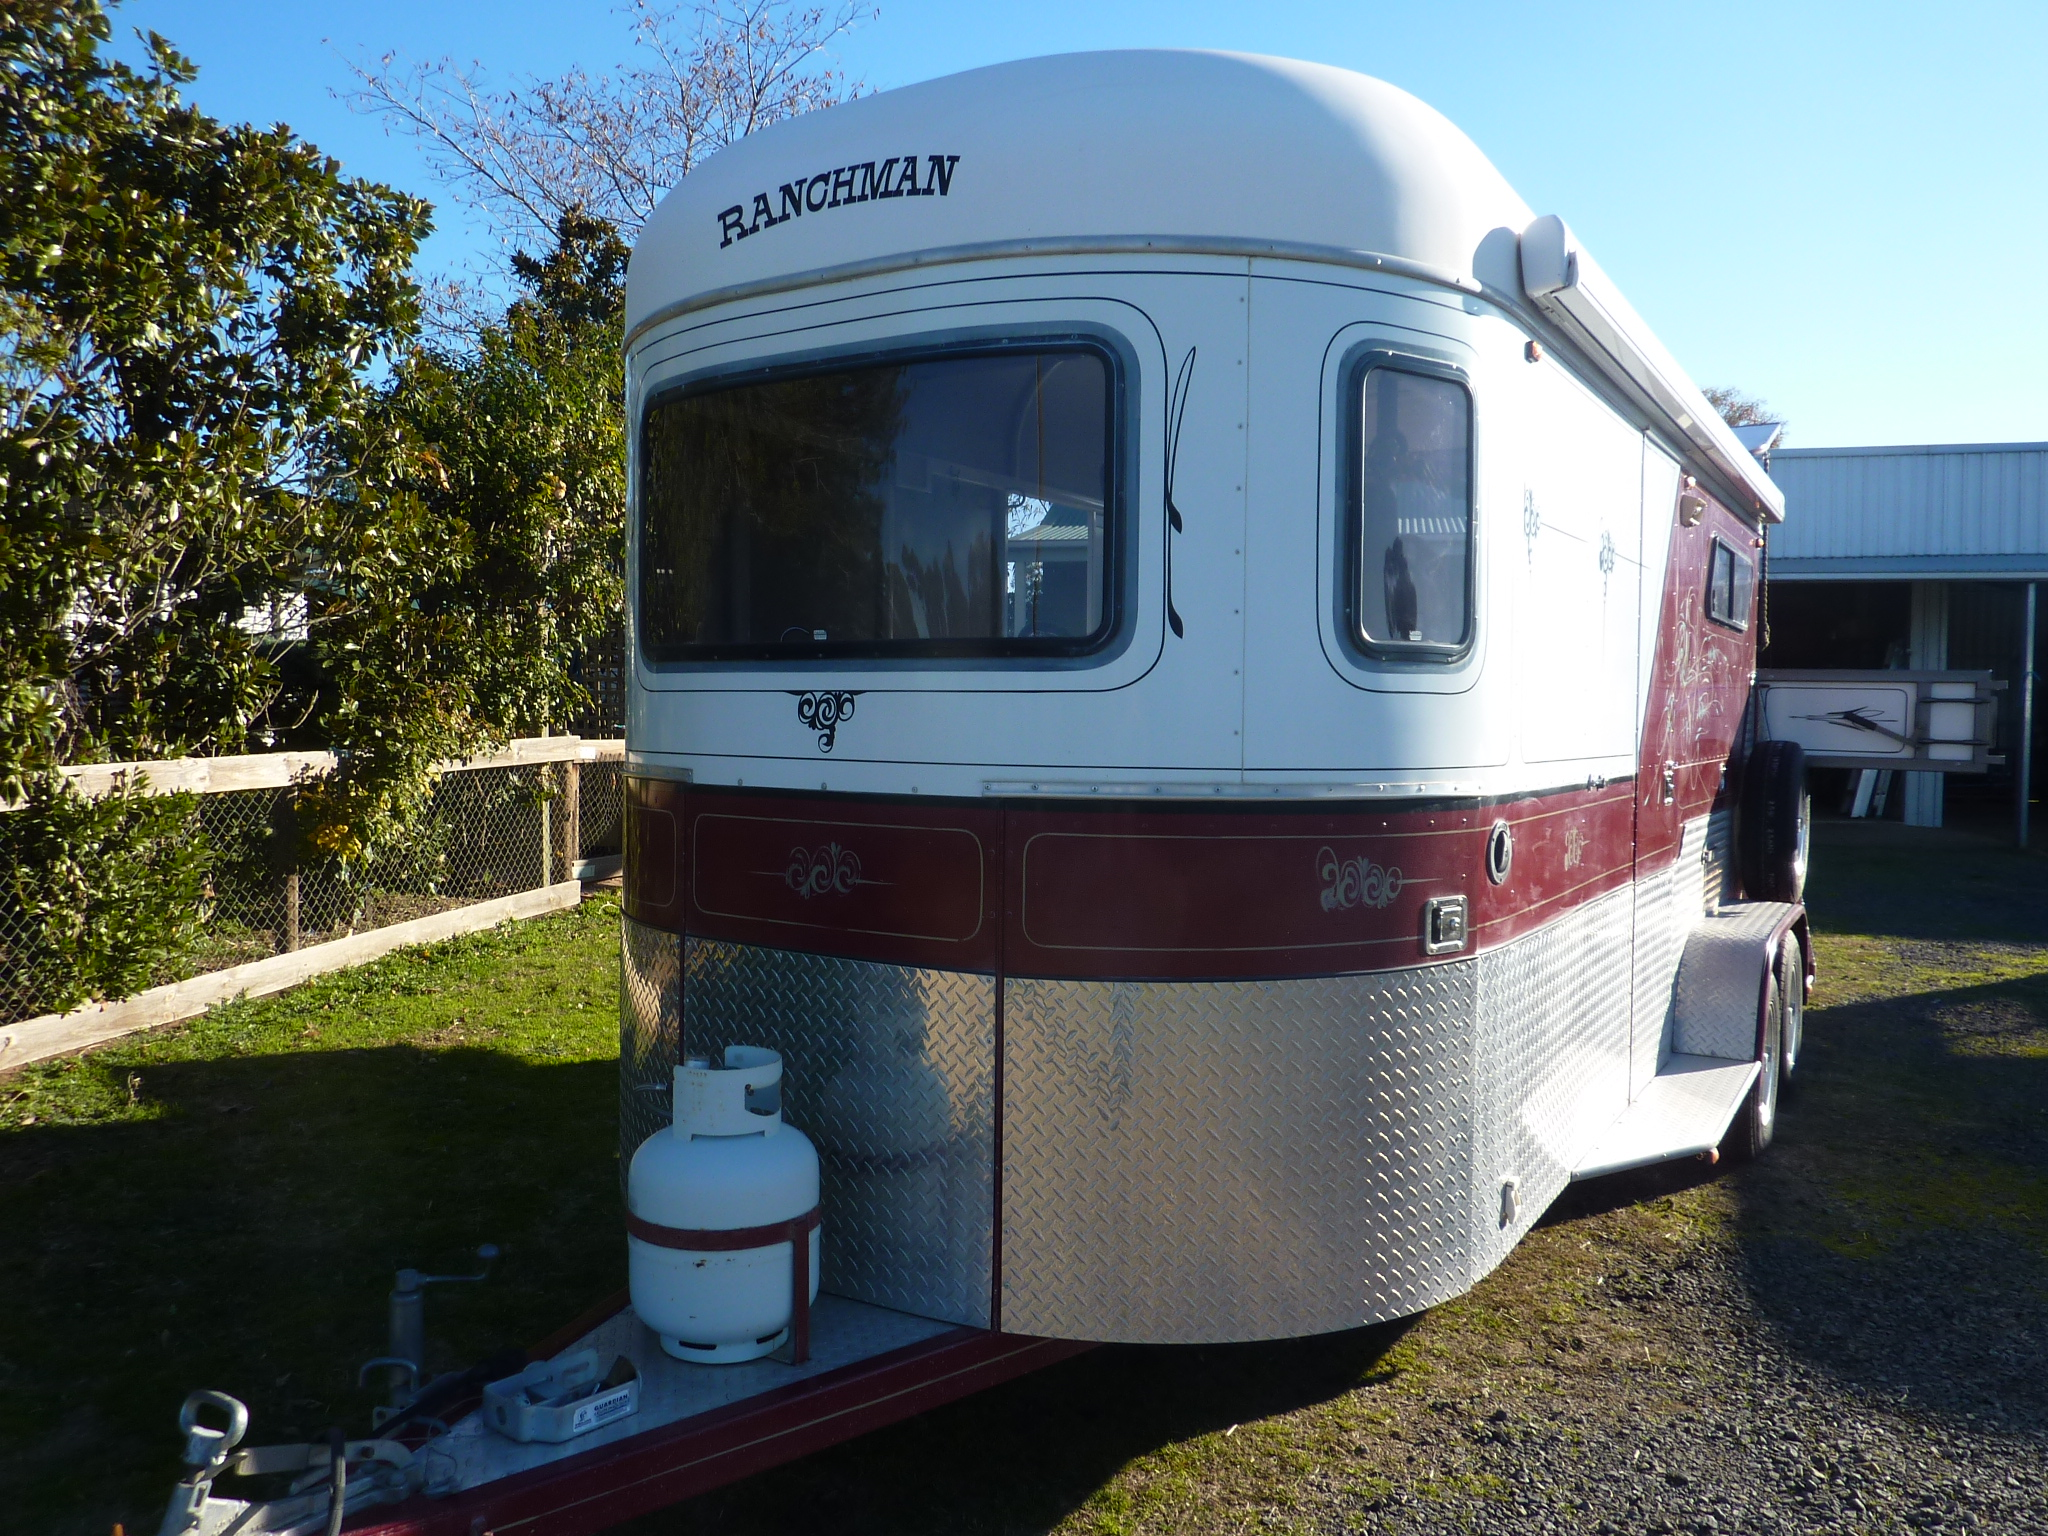 2009 Ranchman 2hsl With Kitchenette Amp Room For Carriage